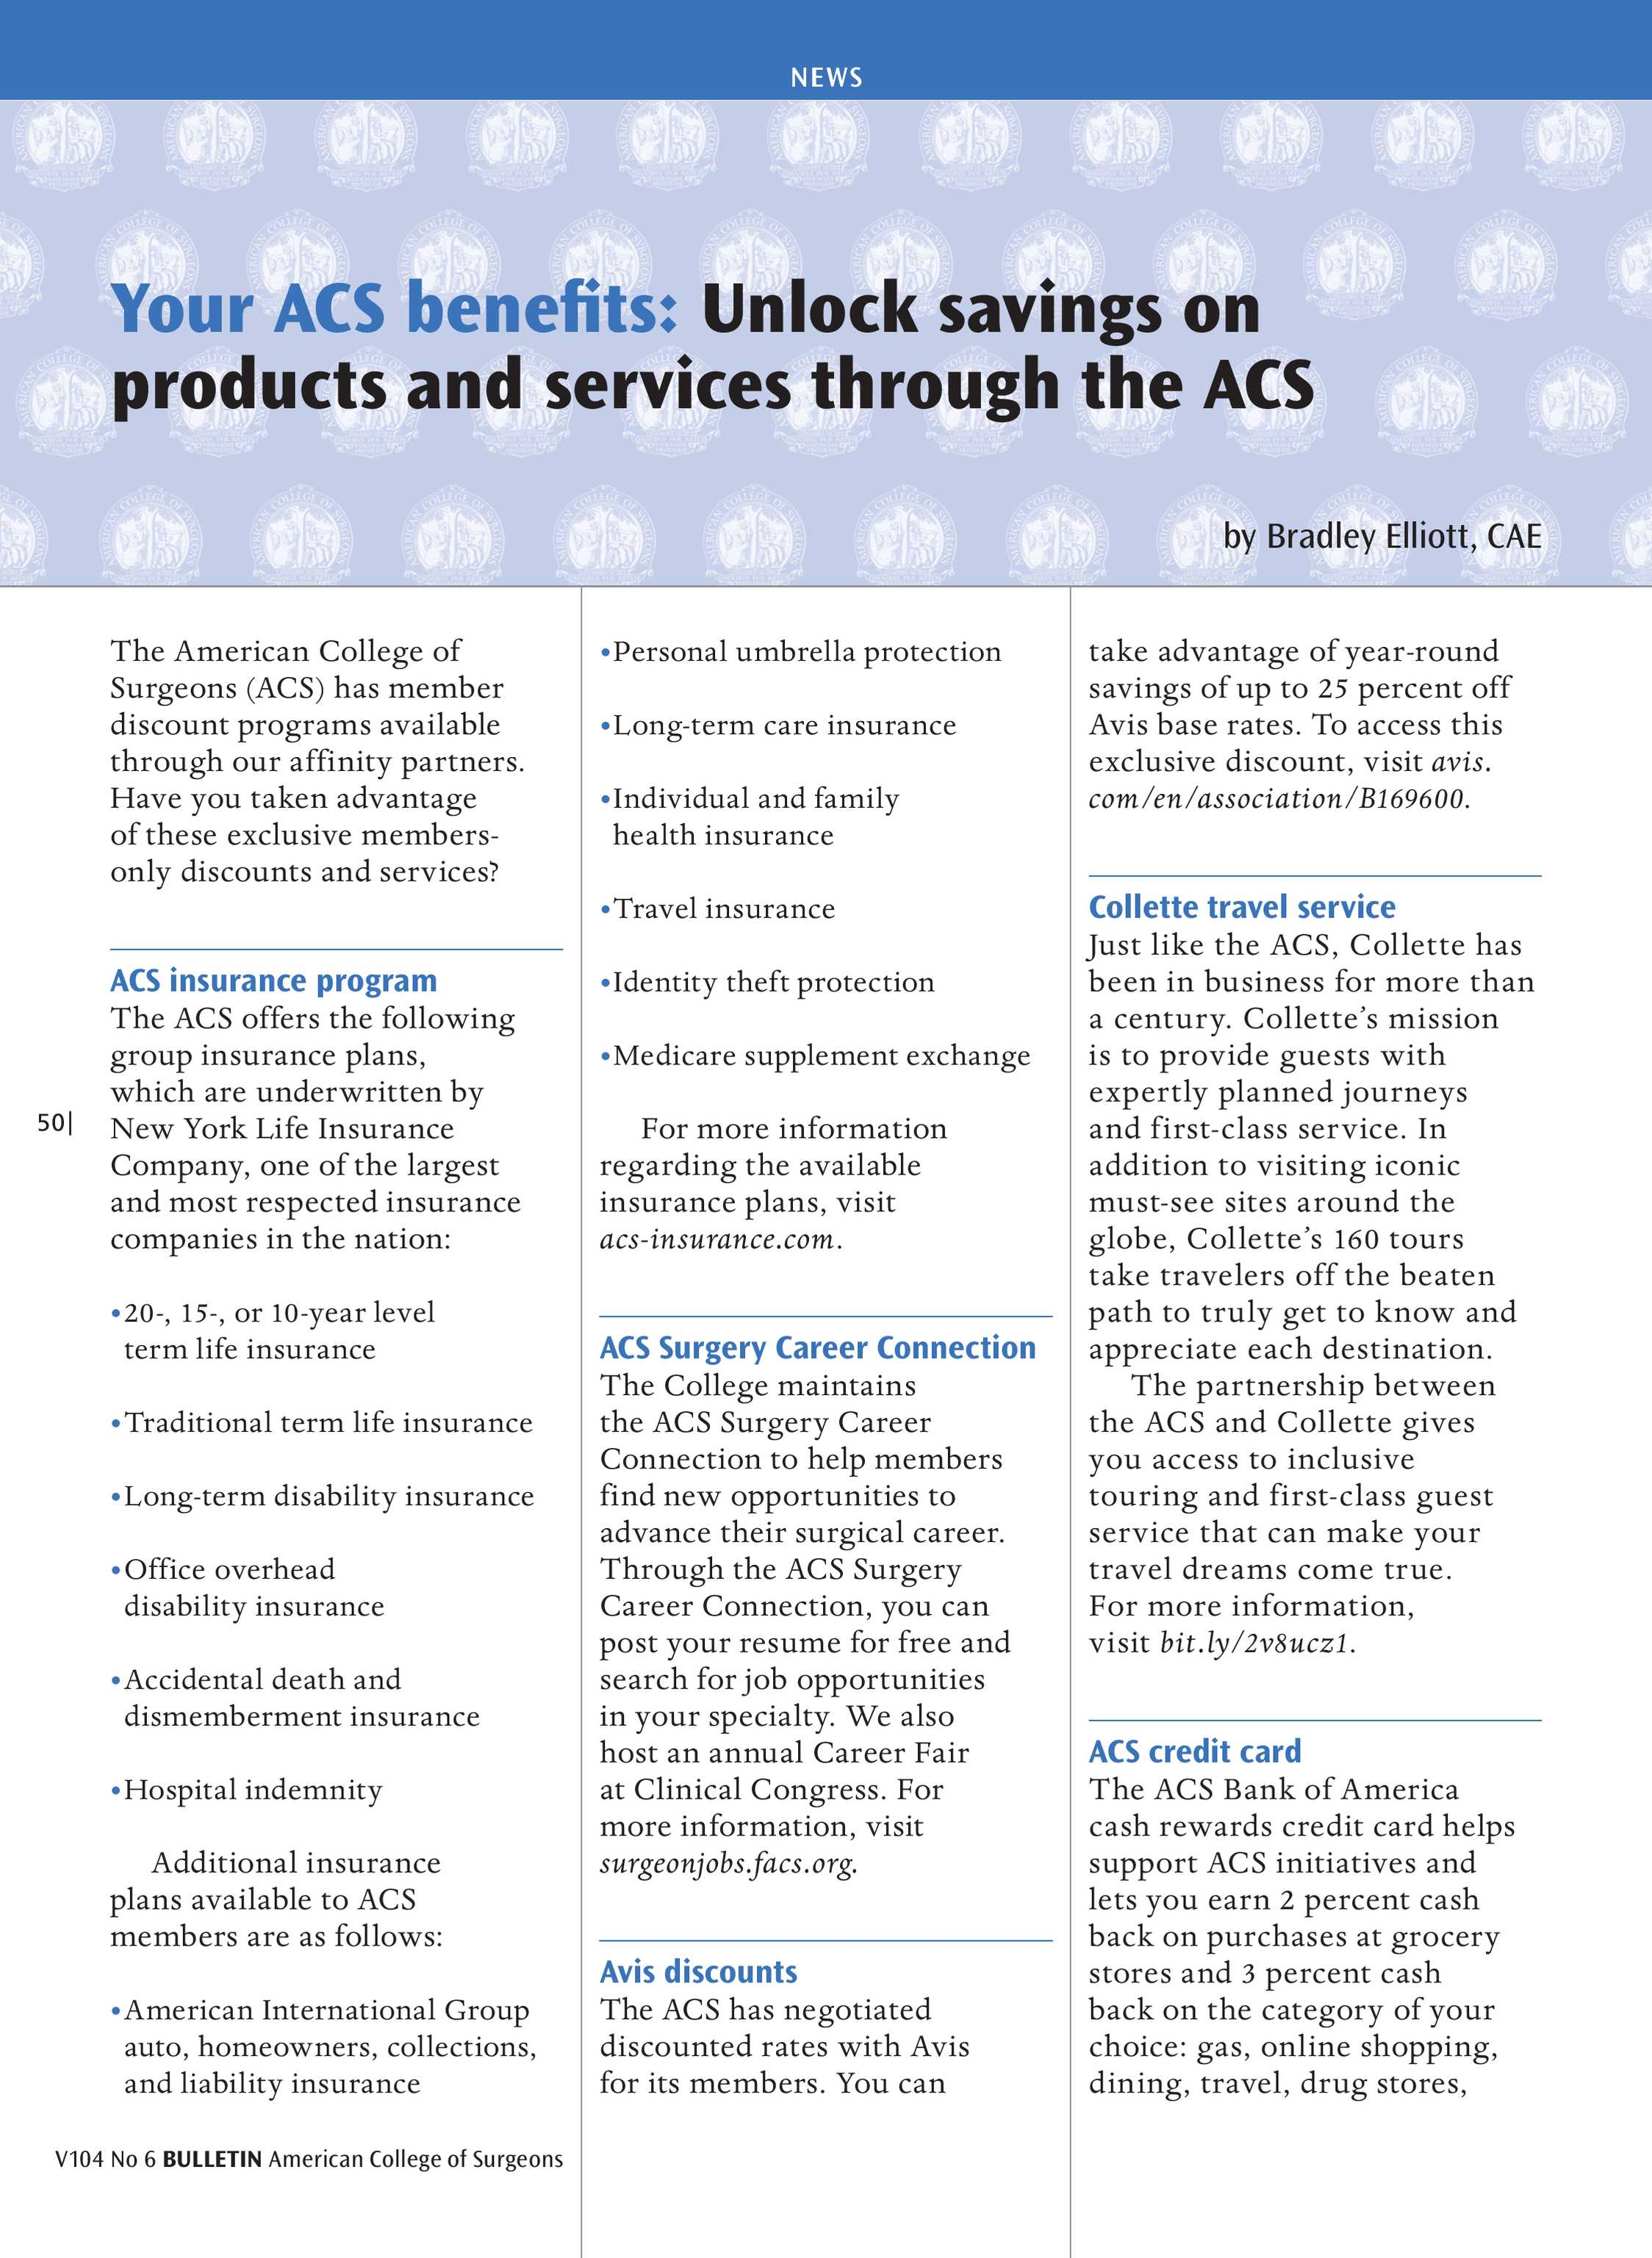 ACS Bulletin - June 2019 - page 49